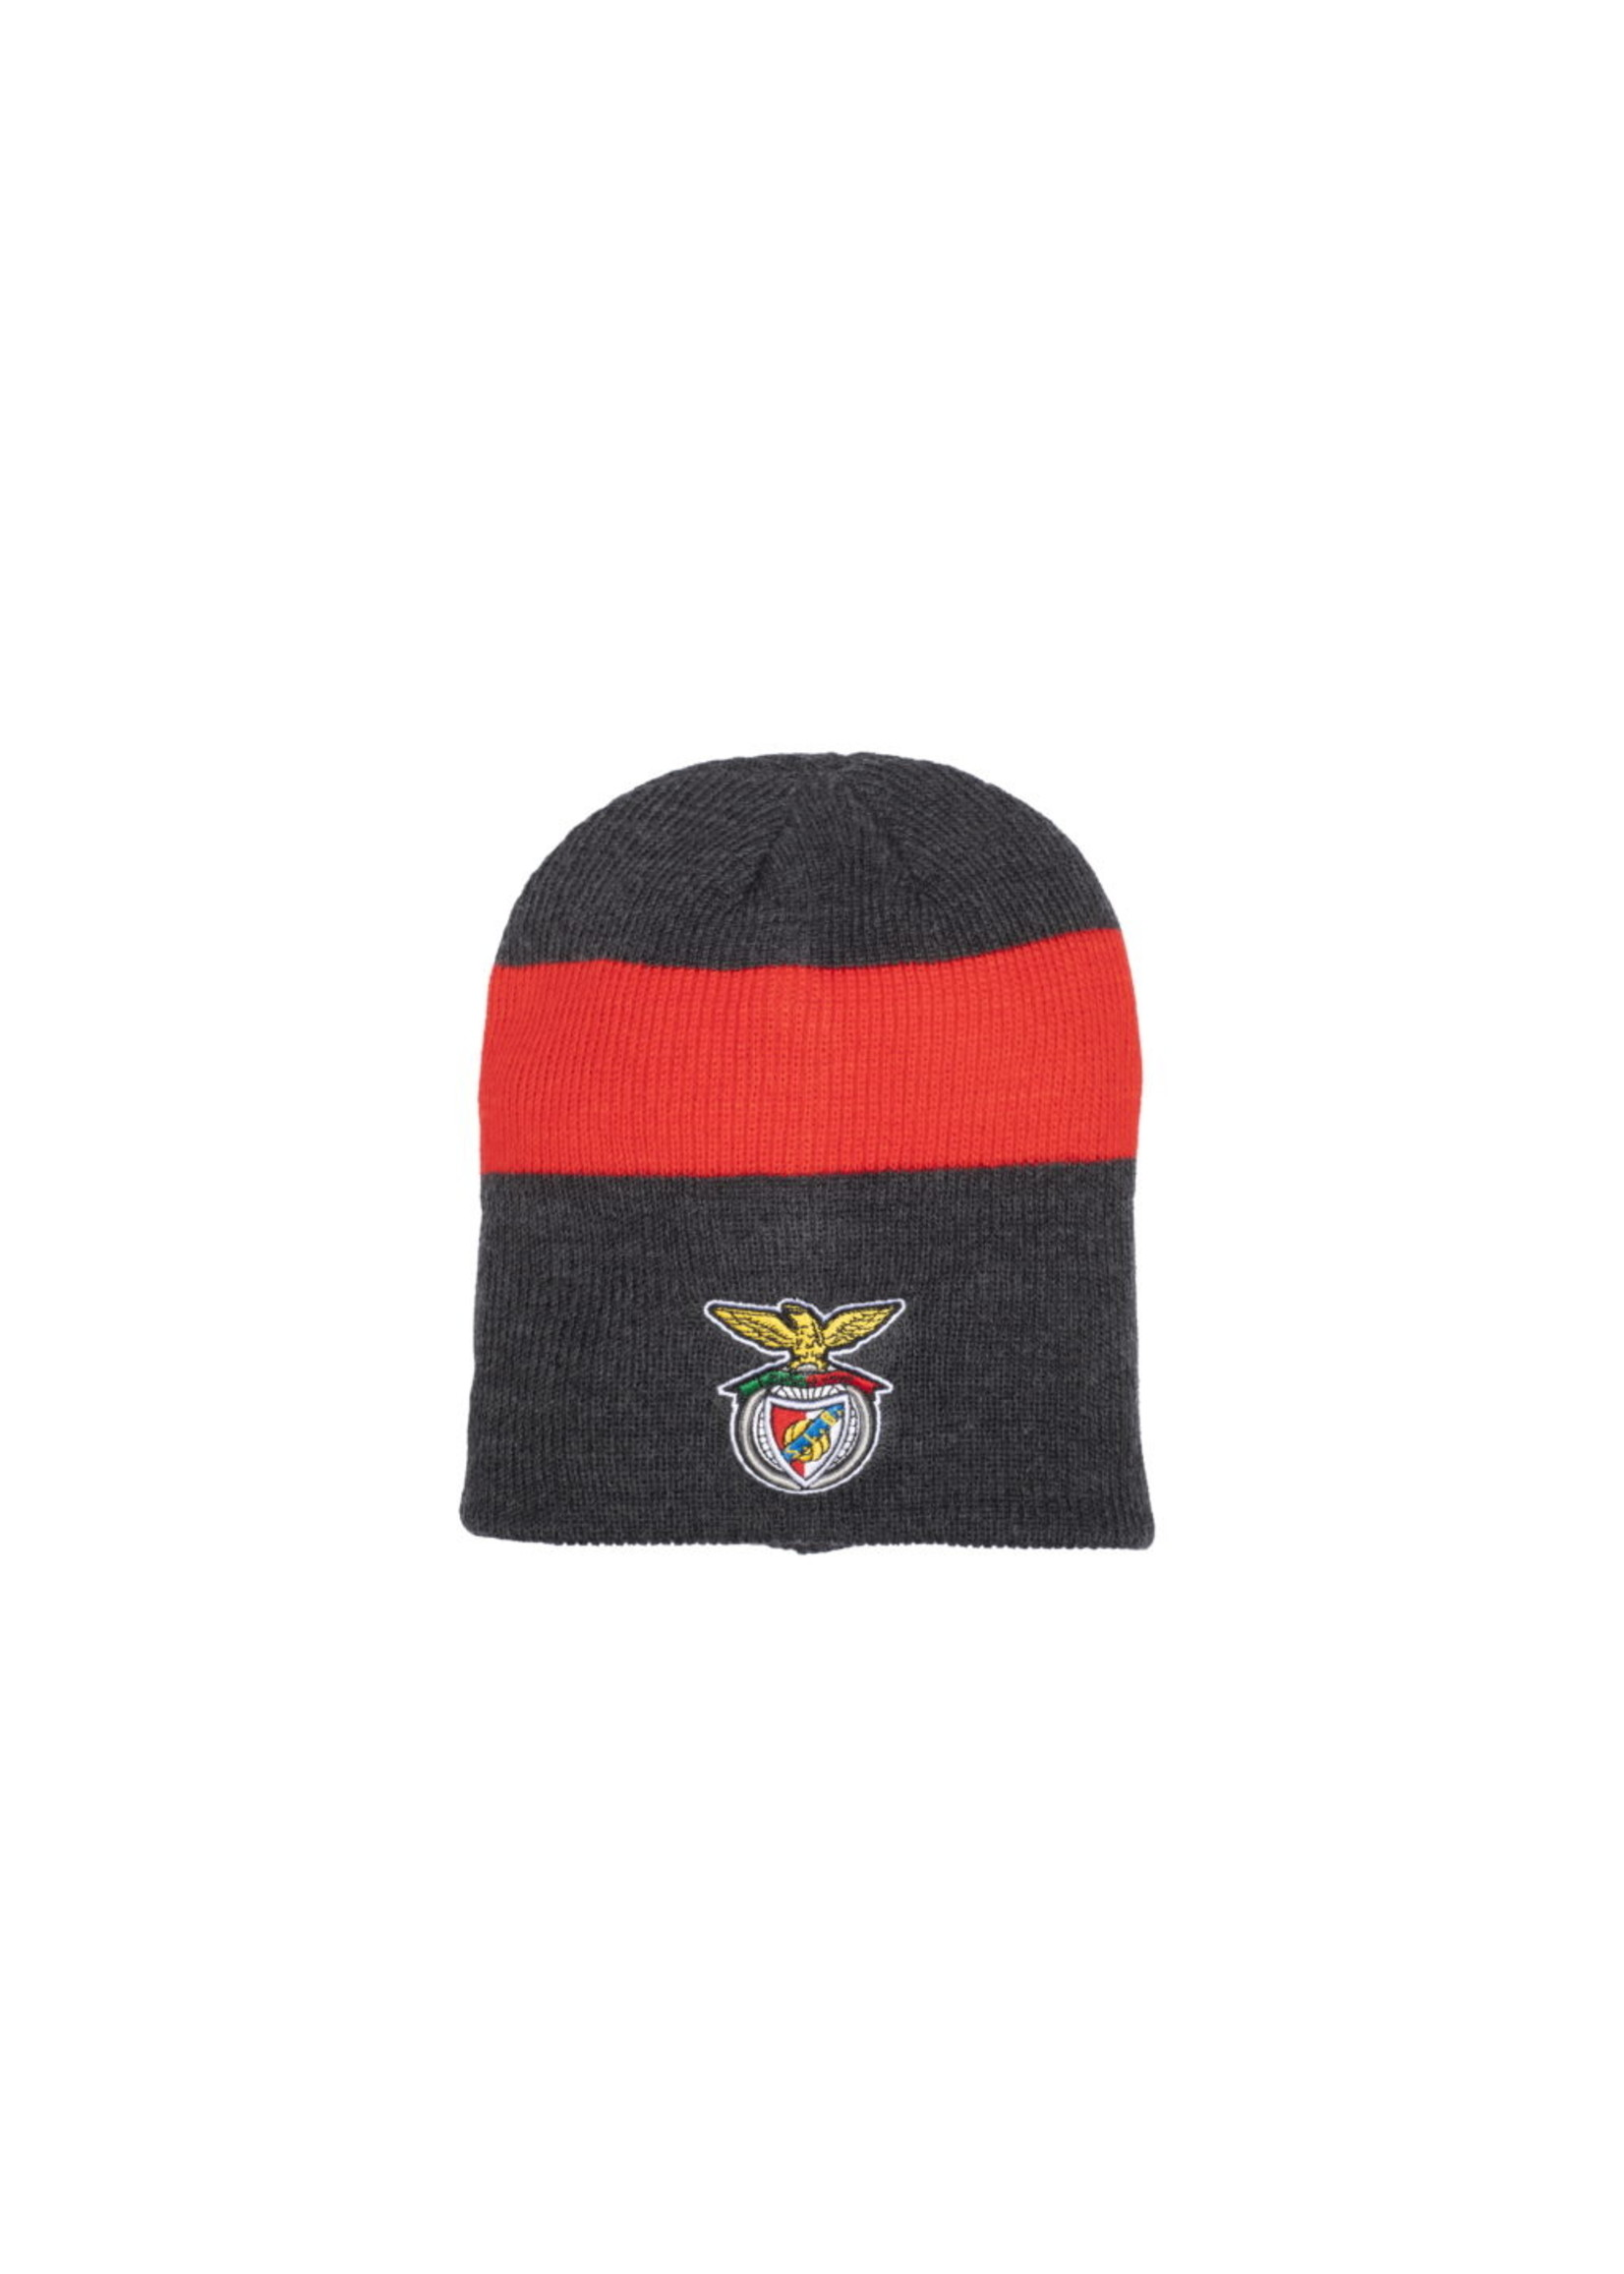 Benfica Fury Knit Beanie